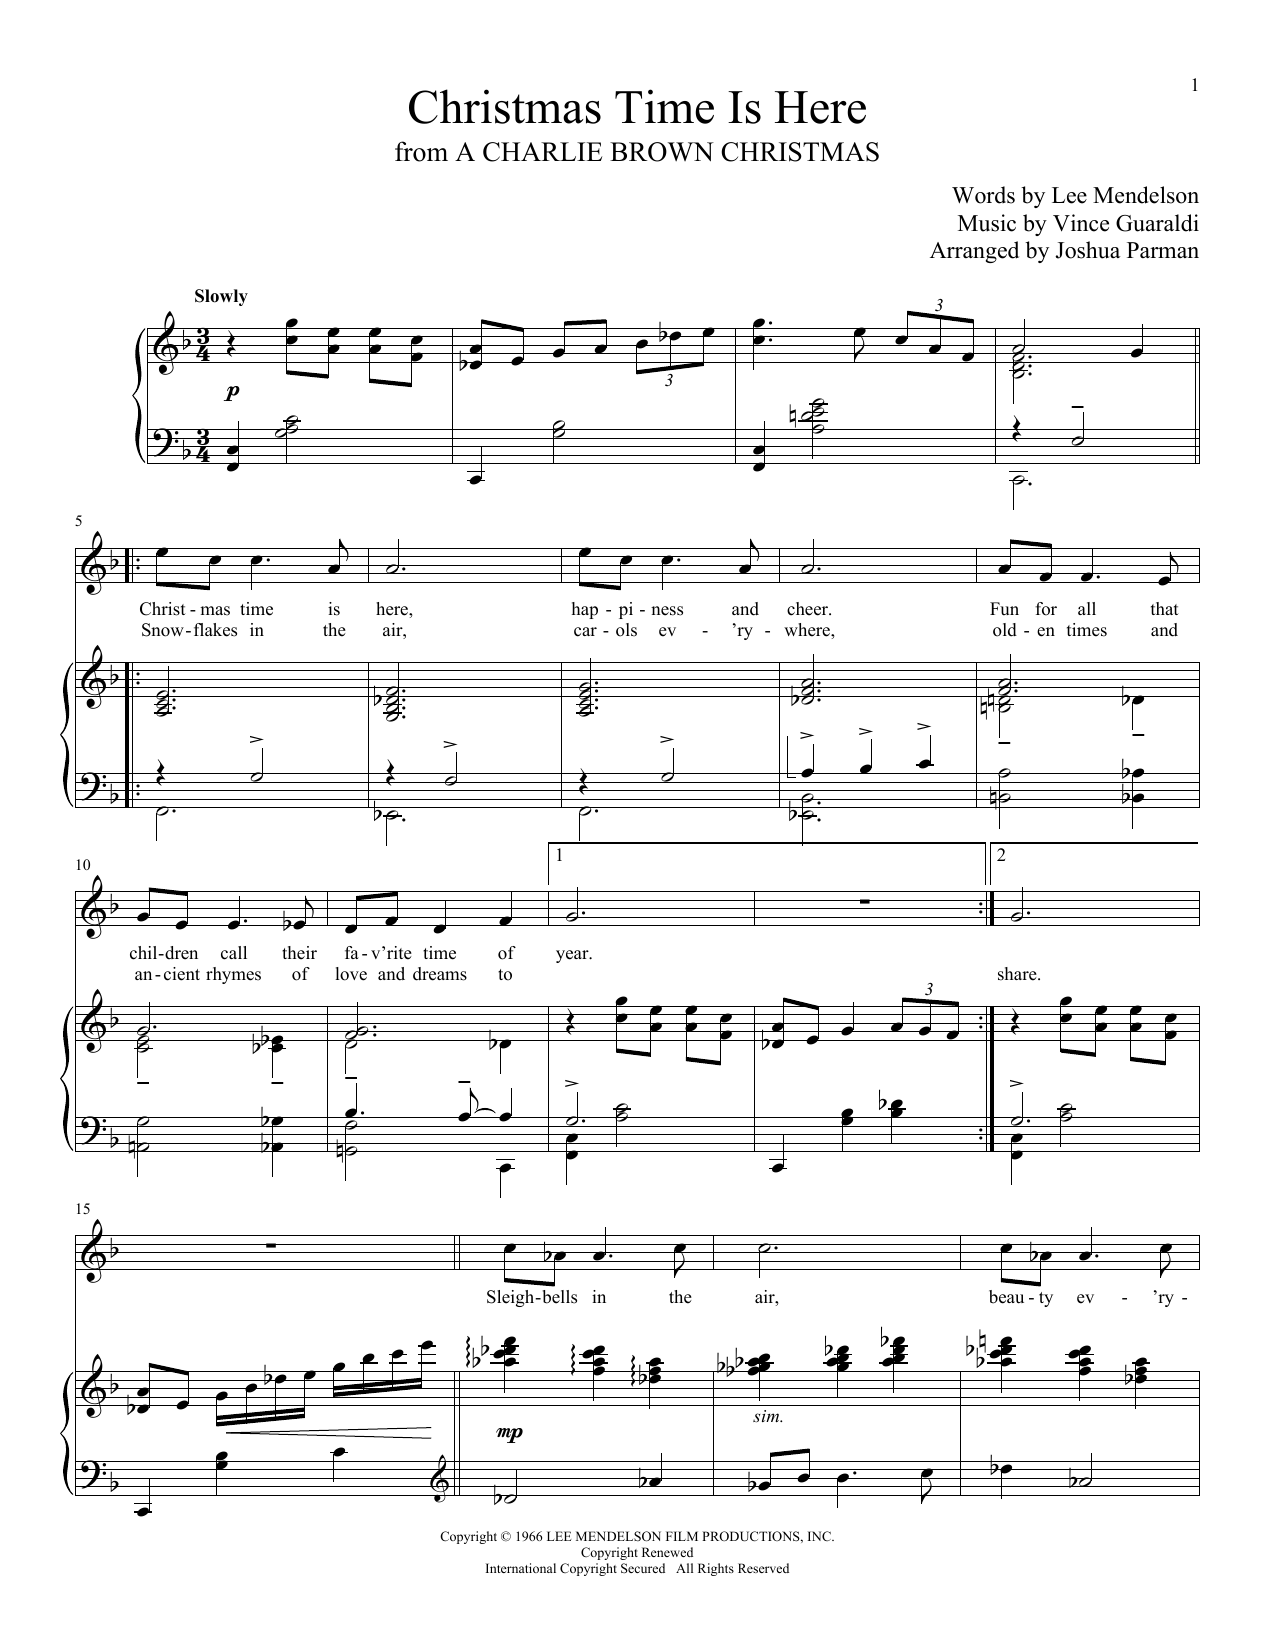 Christmas Time Is Here Piano.Christmas Time Is Here Piano Vocal Print Sheet Music Now